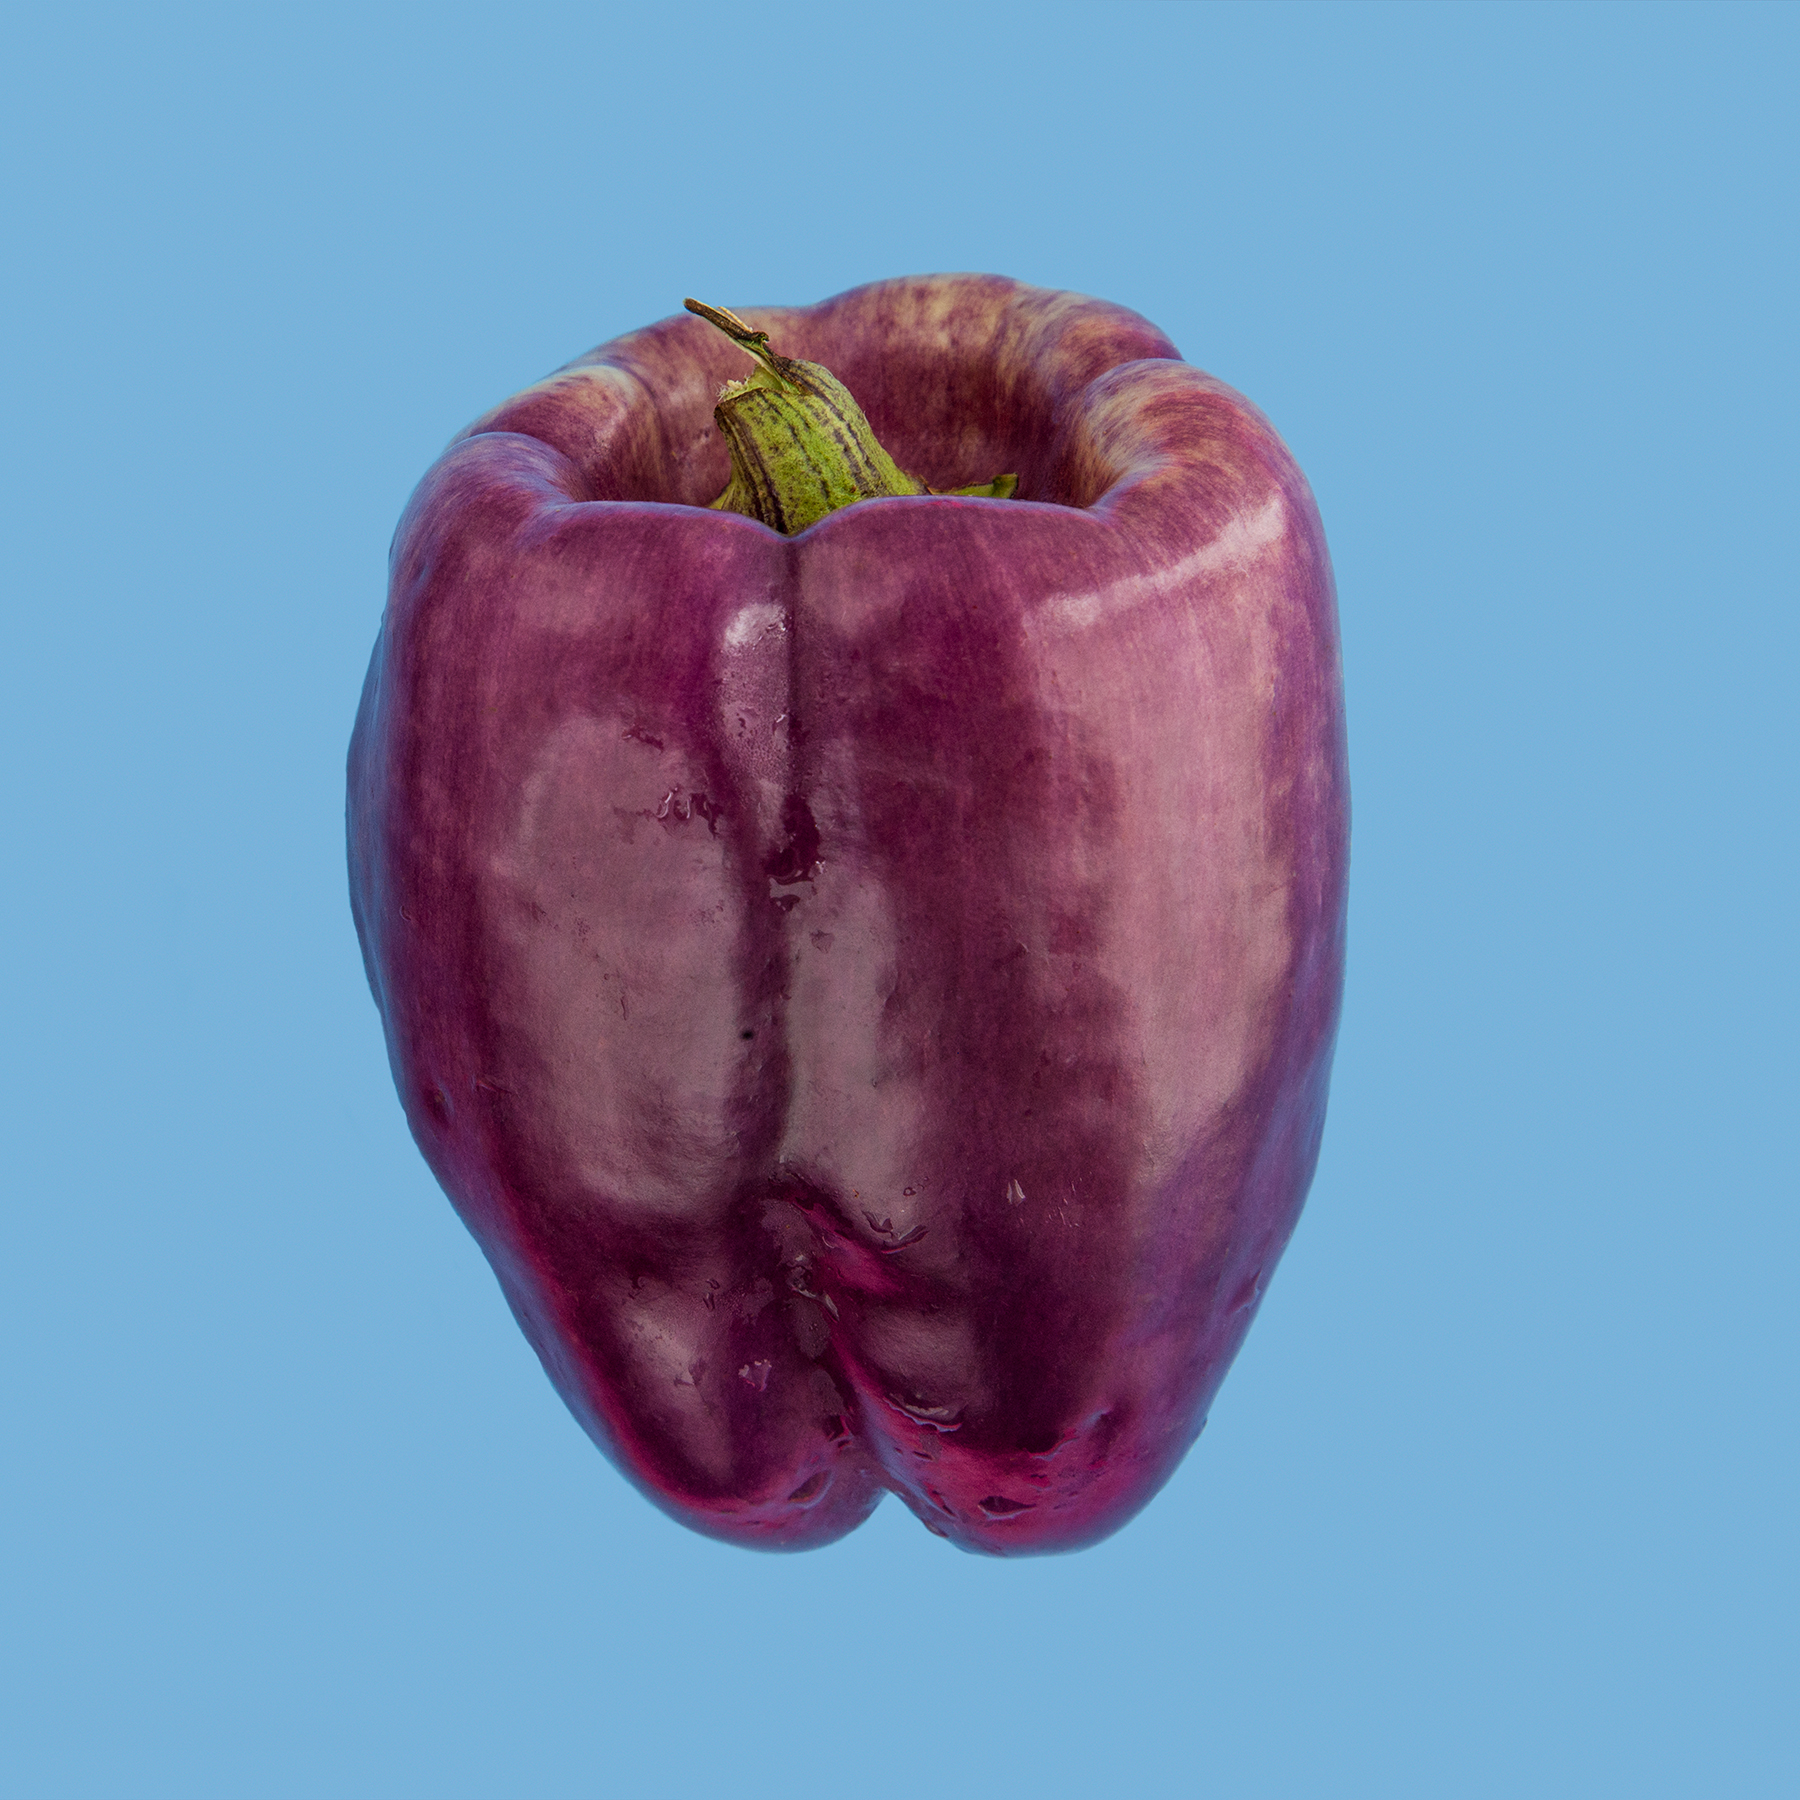 PEPPER-PURPLE-STAR-ORGANIC-HICKORIES-FARM-©-JONATHAN-R.-BECKERMAN-PHOTOGRAPHY-083016_COLOR.jpg